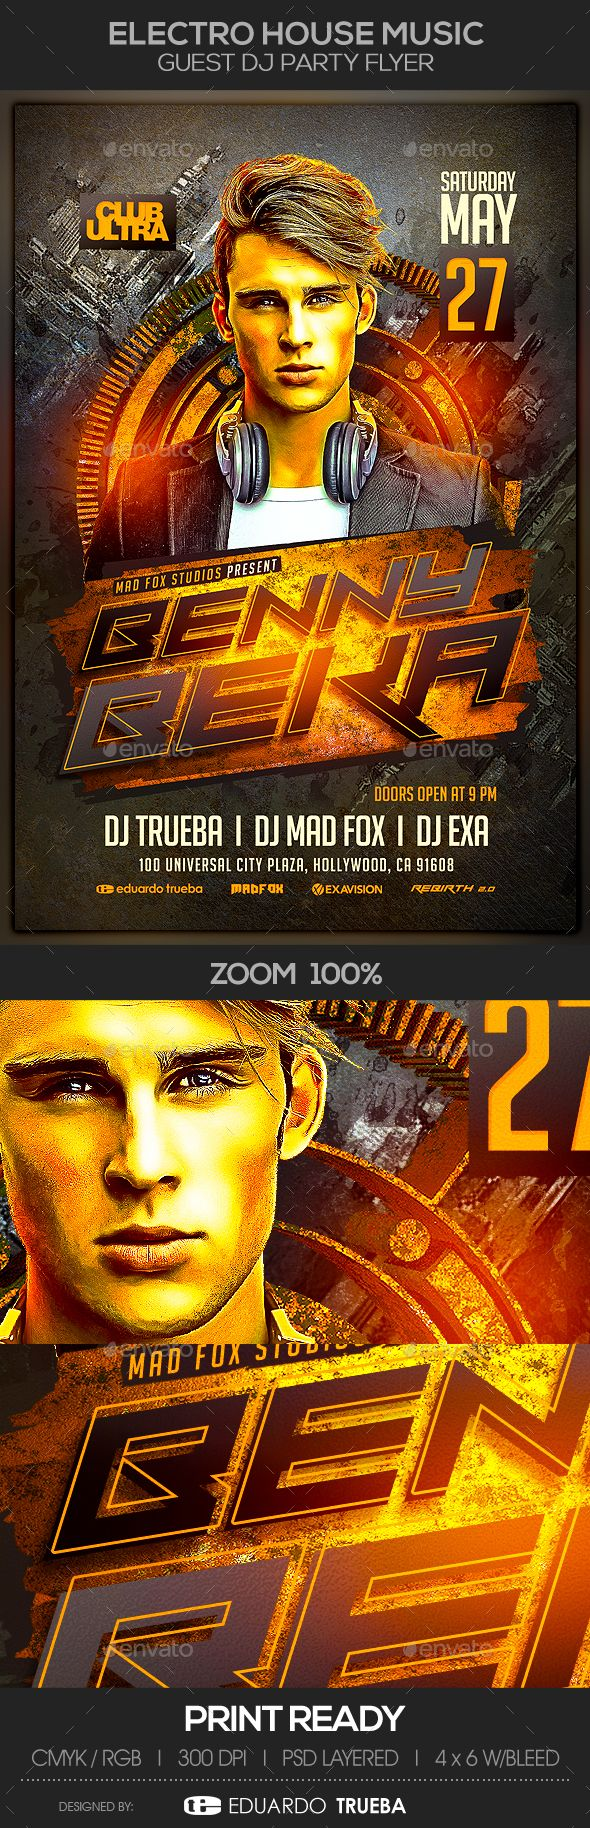 Electro House Music Guest Dj Party Flyer Template PSD